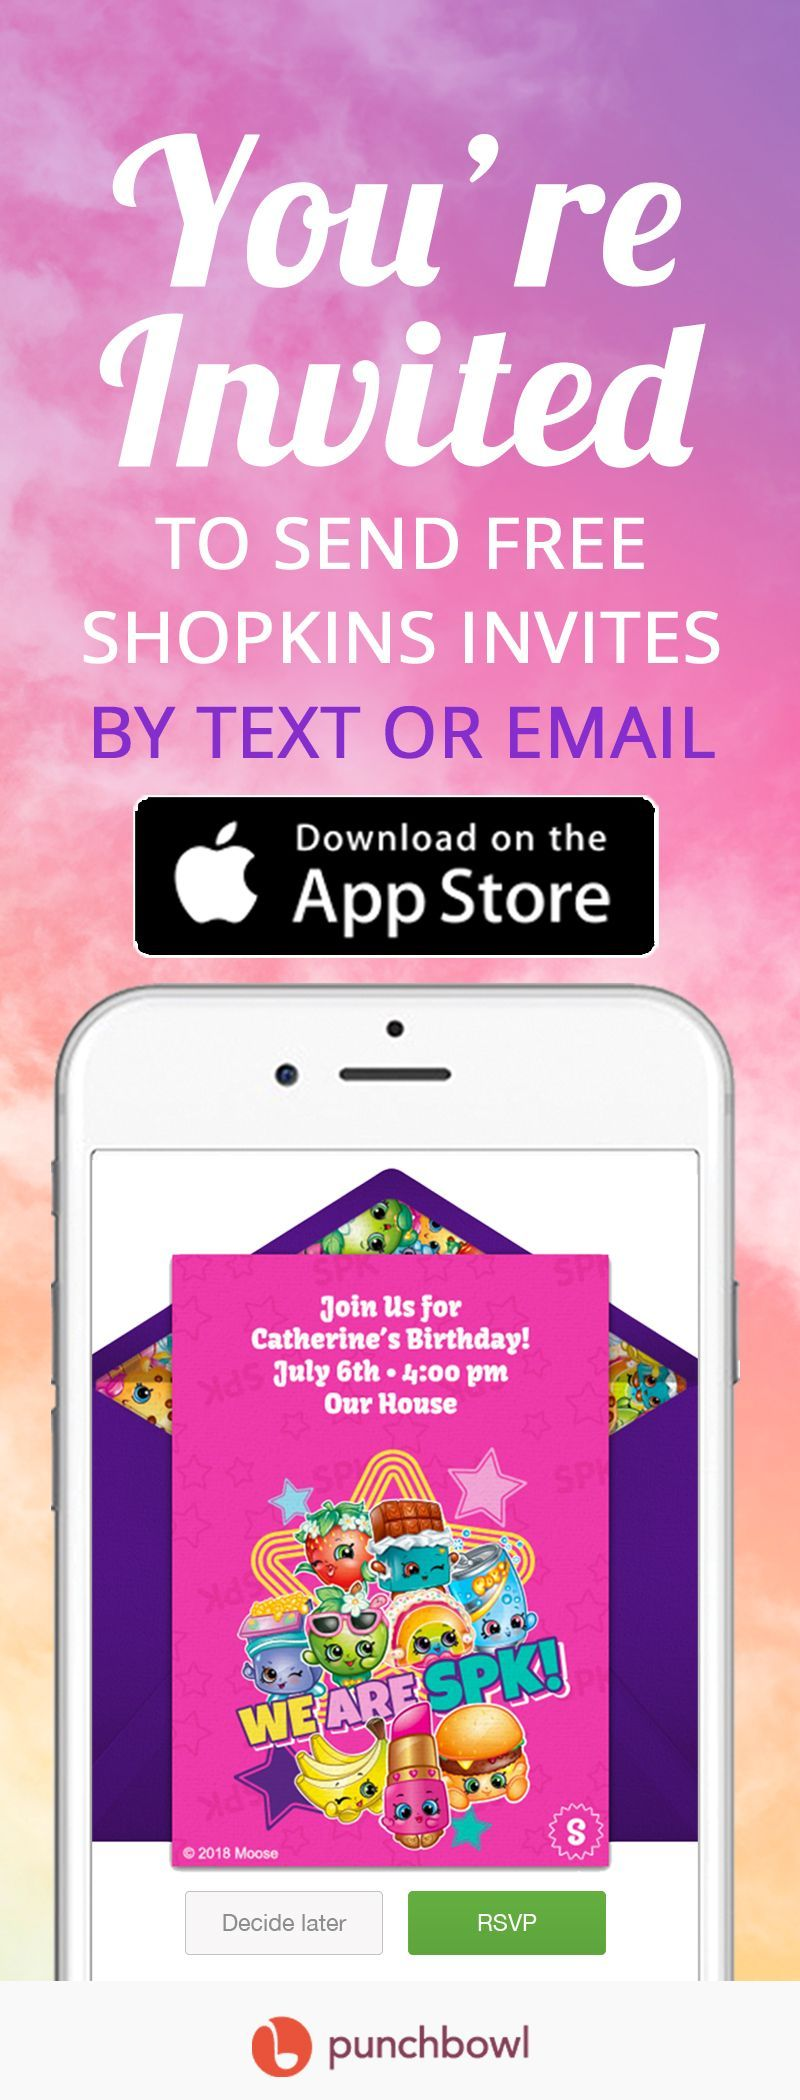 Send free Shopkins invitations by text message right from